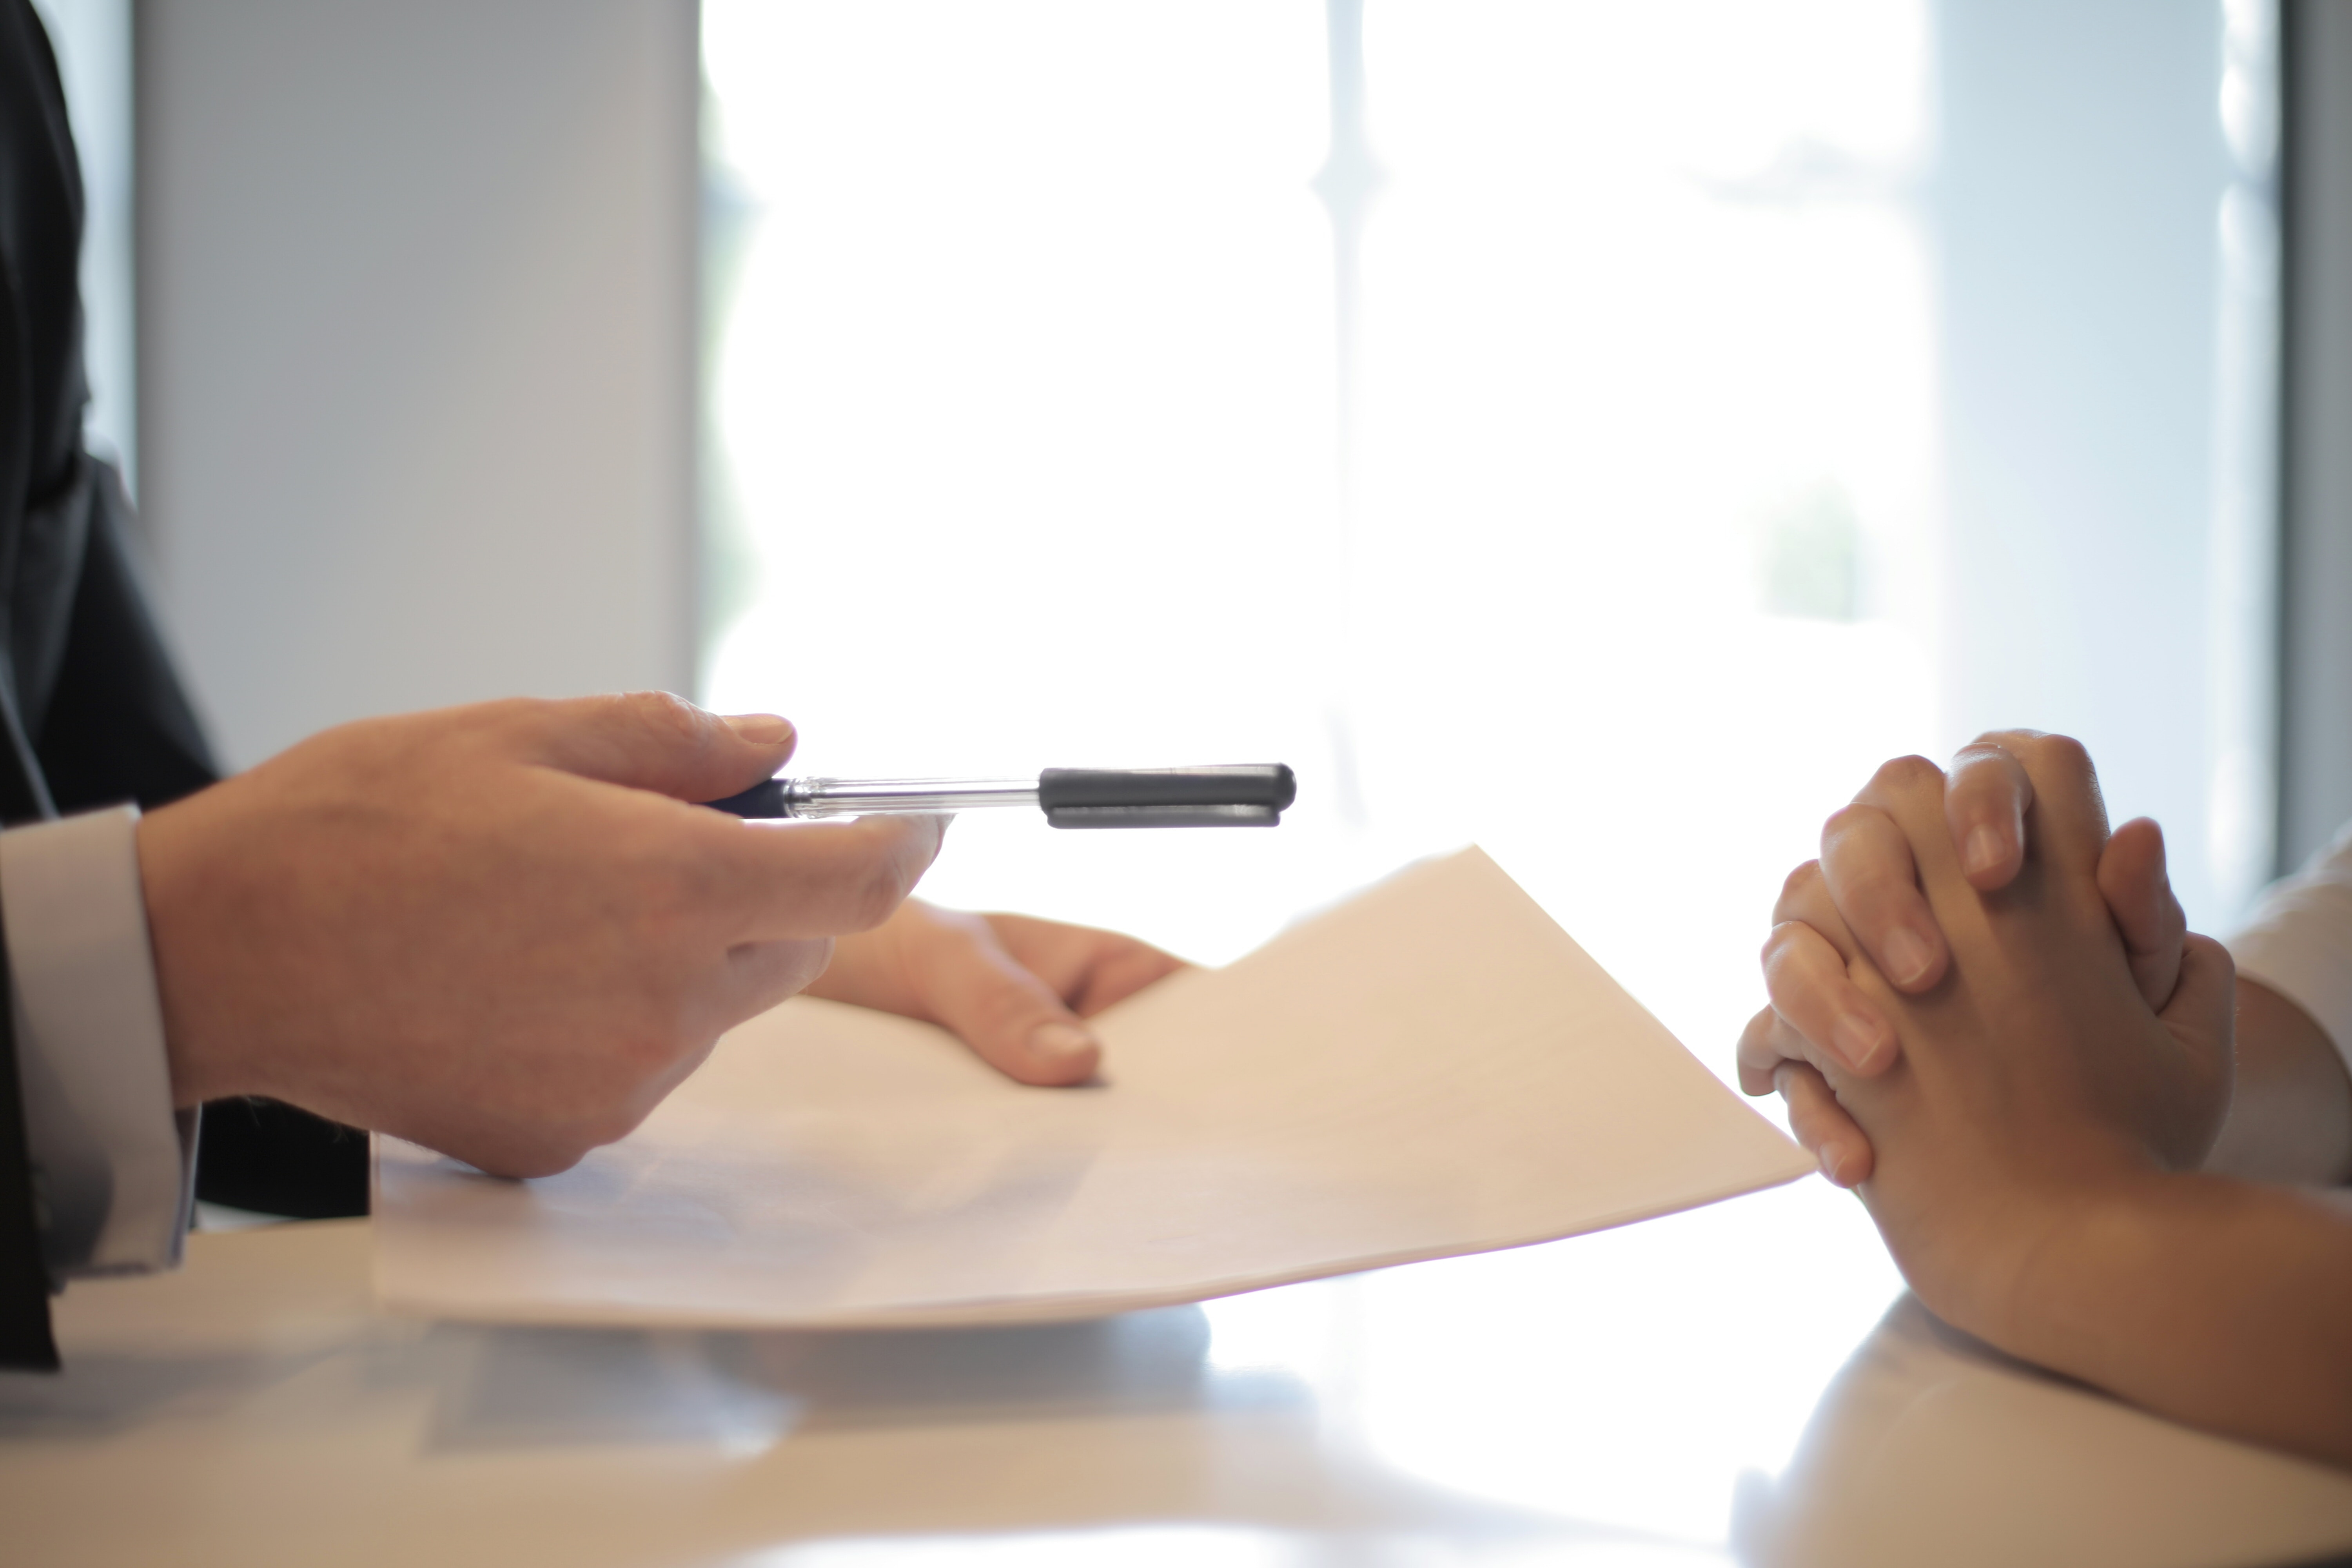 Handing-A-Pen-And-Contract-To-Person